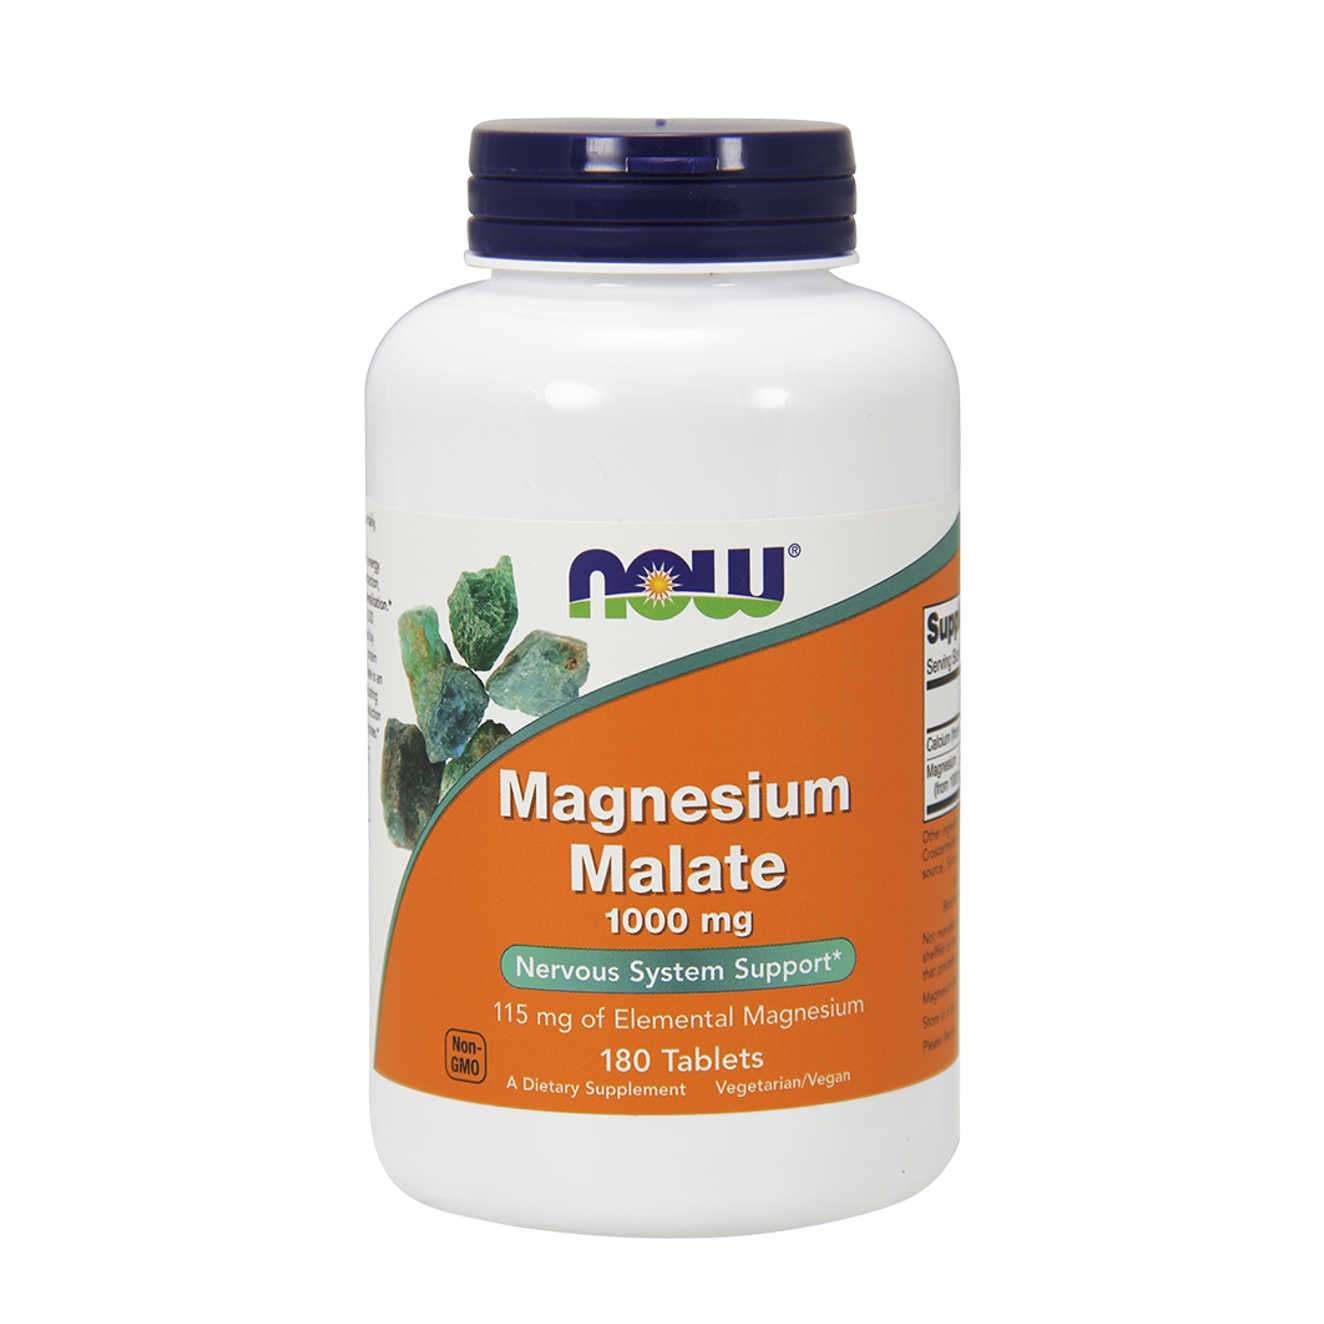 MAGNESIUM MALATE 1000mg - 180 tabs